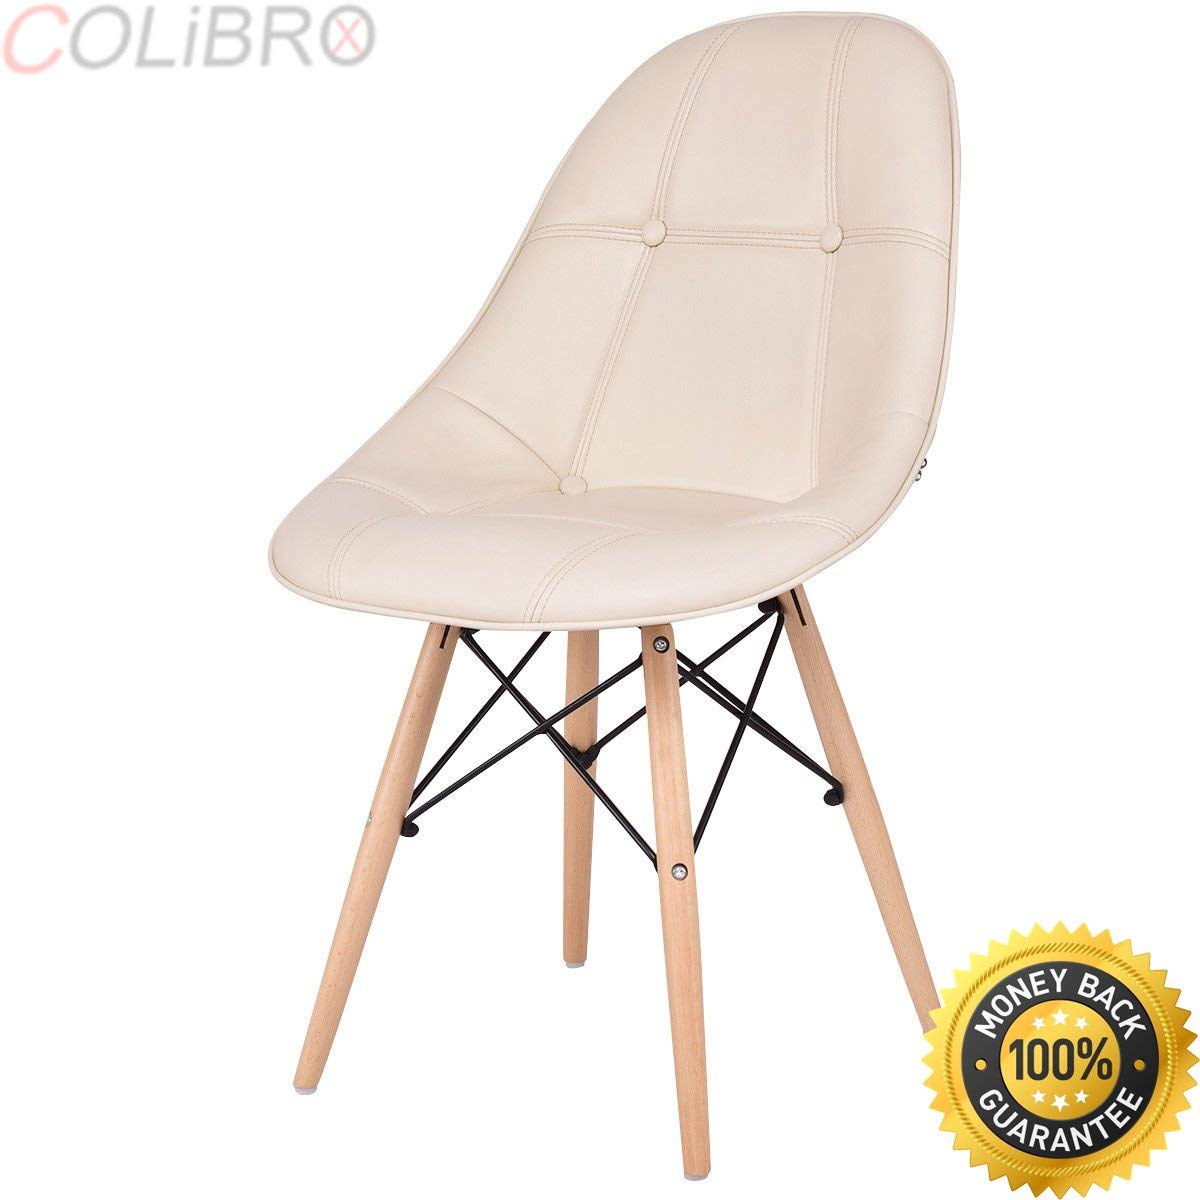 COLIBROX--Set of 2 Dining Side Chair Armless PU Leather Seat with Wood Legs Beige Modern. dining chairs set of 2. upholstered dining room chairs. beige leather dining room chairs. beige dining chairs.